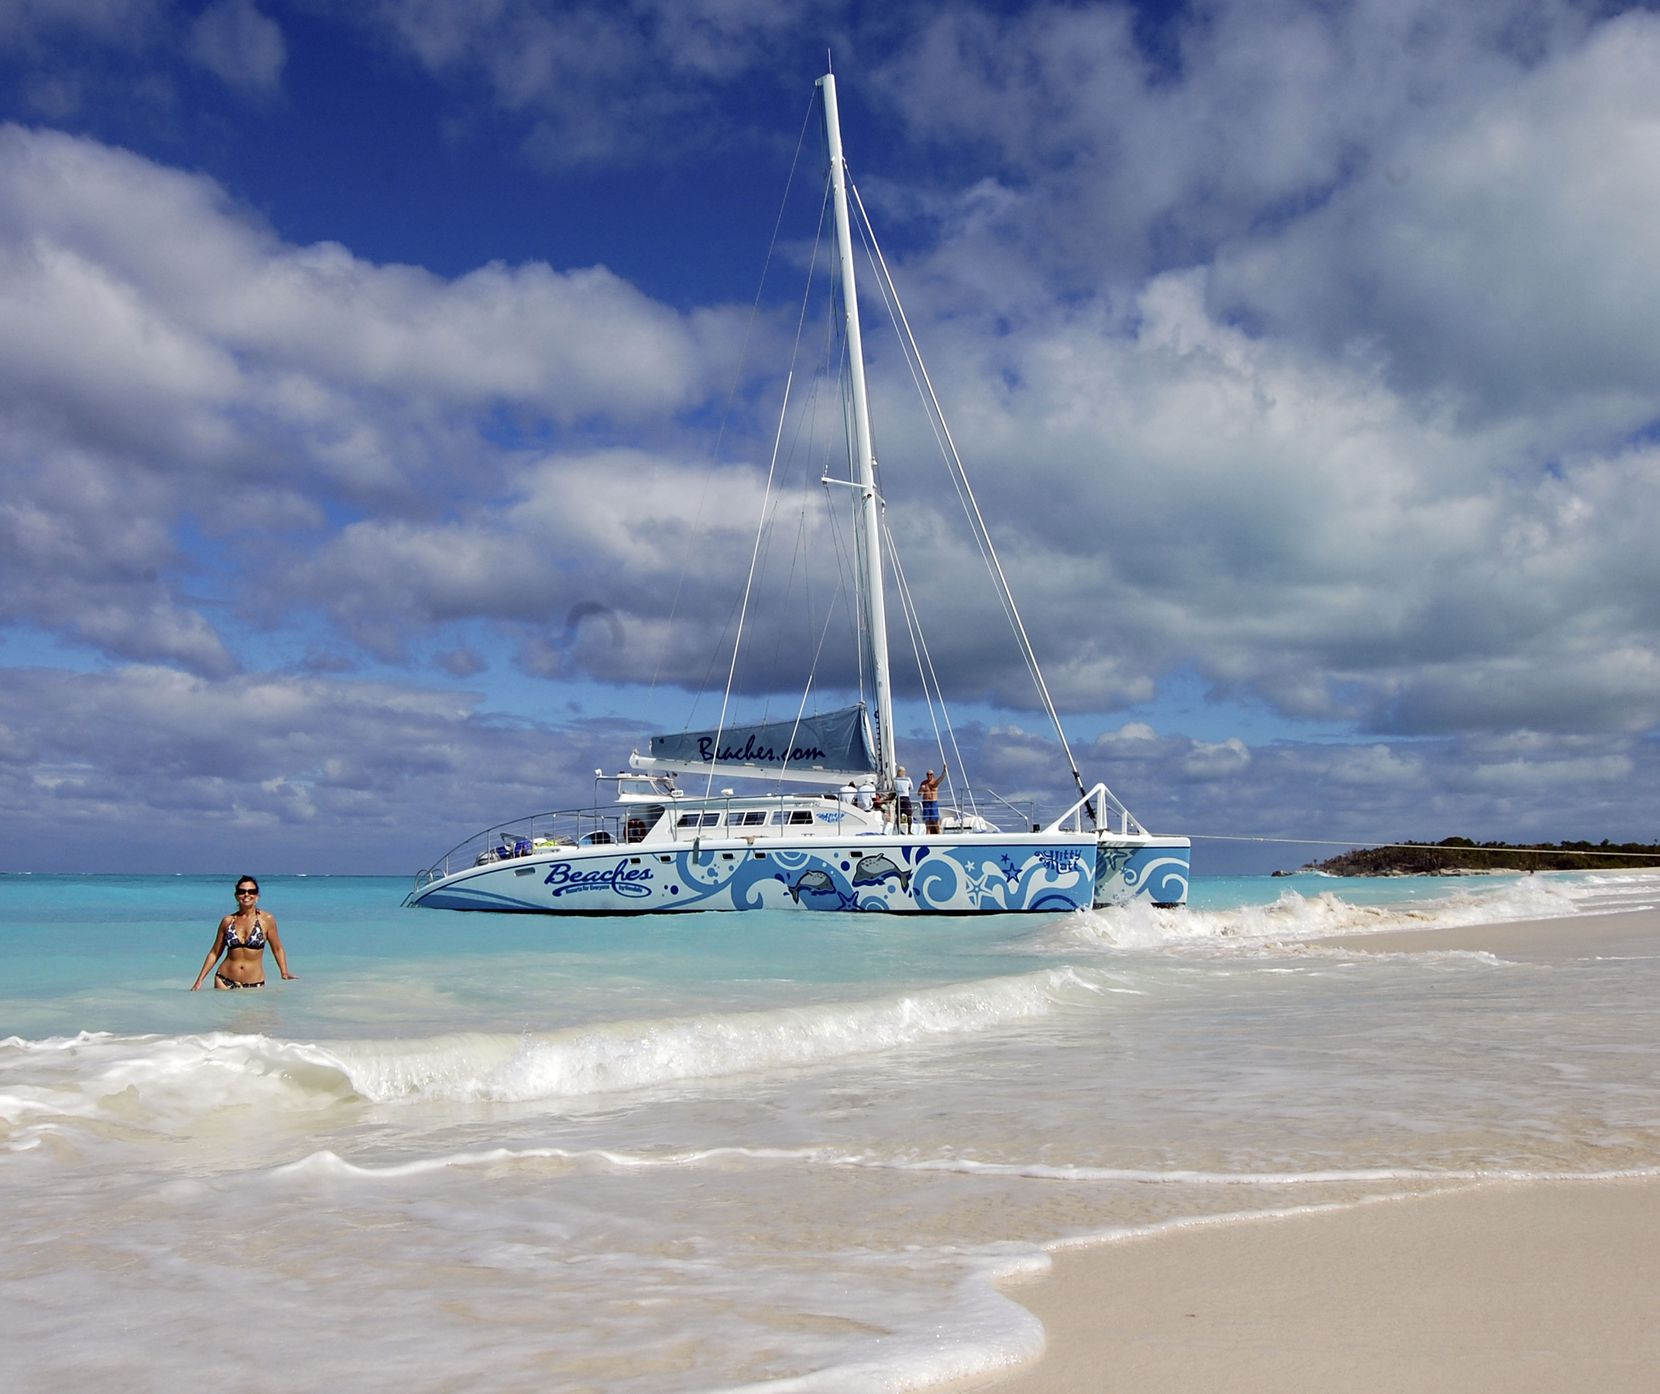 A Beaches Resort catamaran tour makes a stop at Little Water Cay in Turks and Caicos.